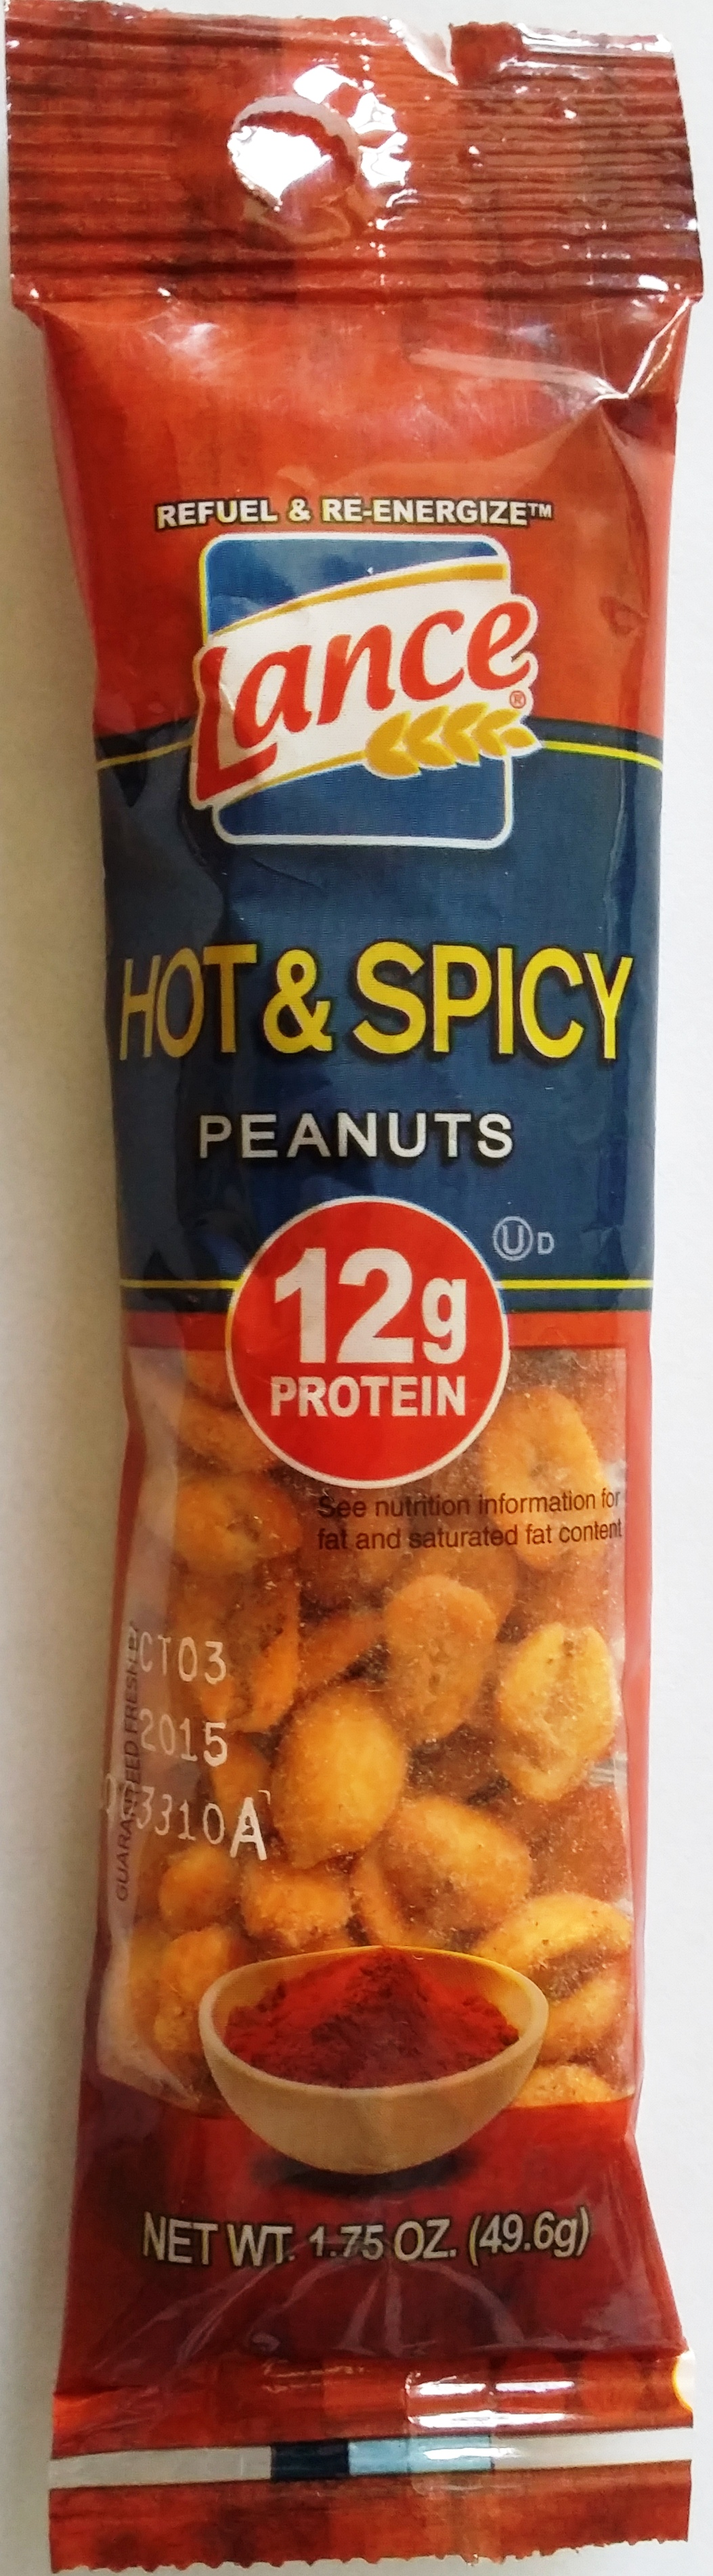 Lance Hot and Spicy Peanuts